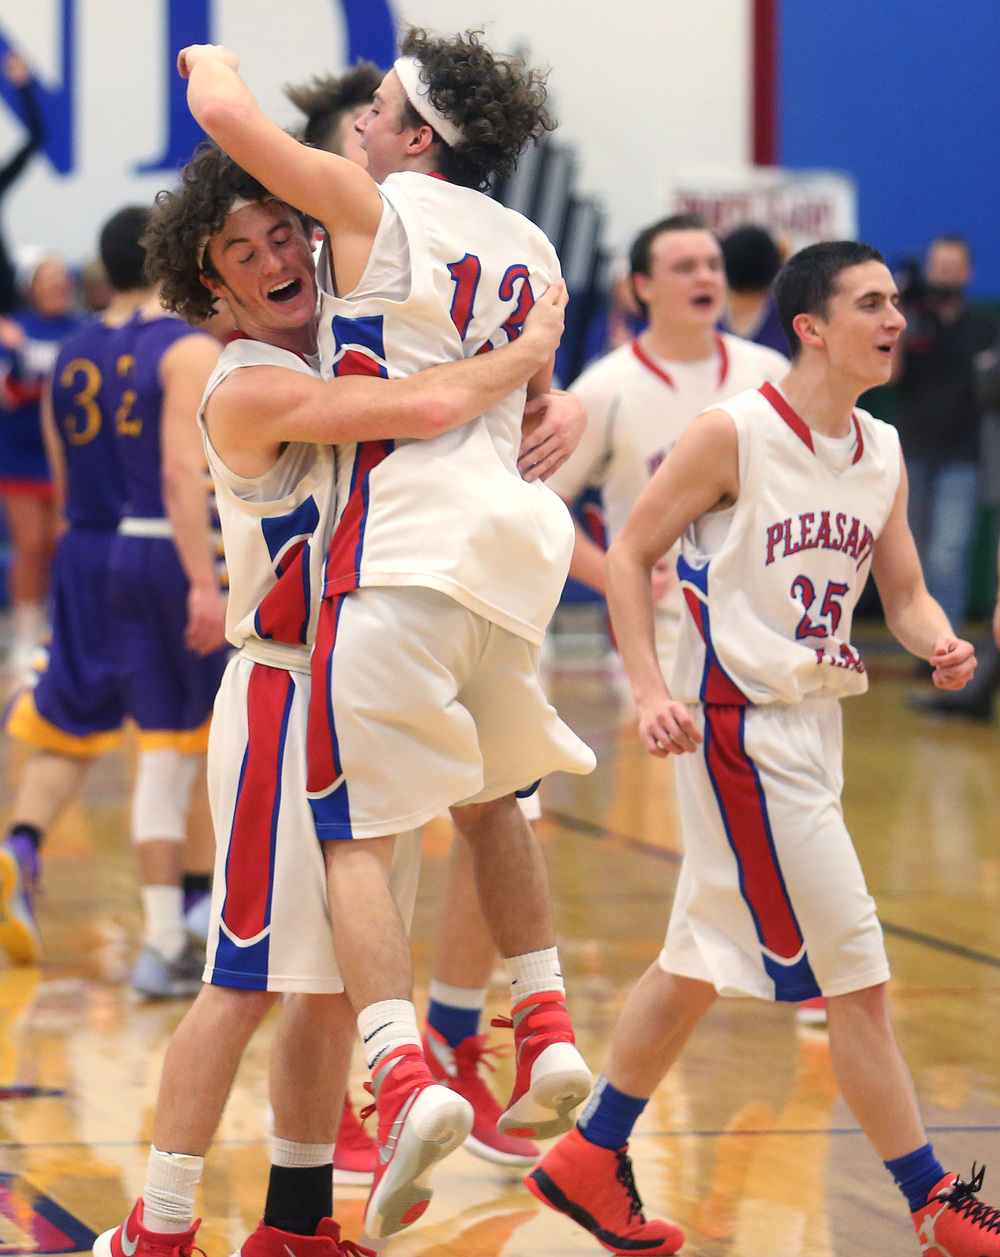 Cardinal players Daulton Nibbe at left embraces teammate Cole Greer seconds after their team defeated the Bullets. David Spencer/The State Journal Register